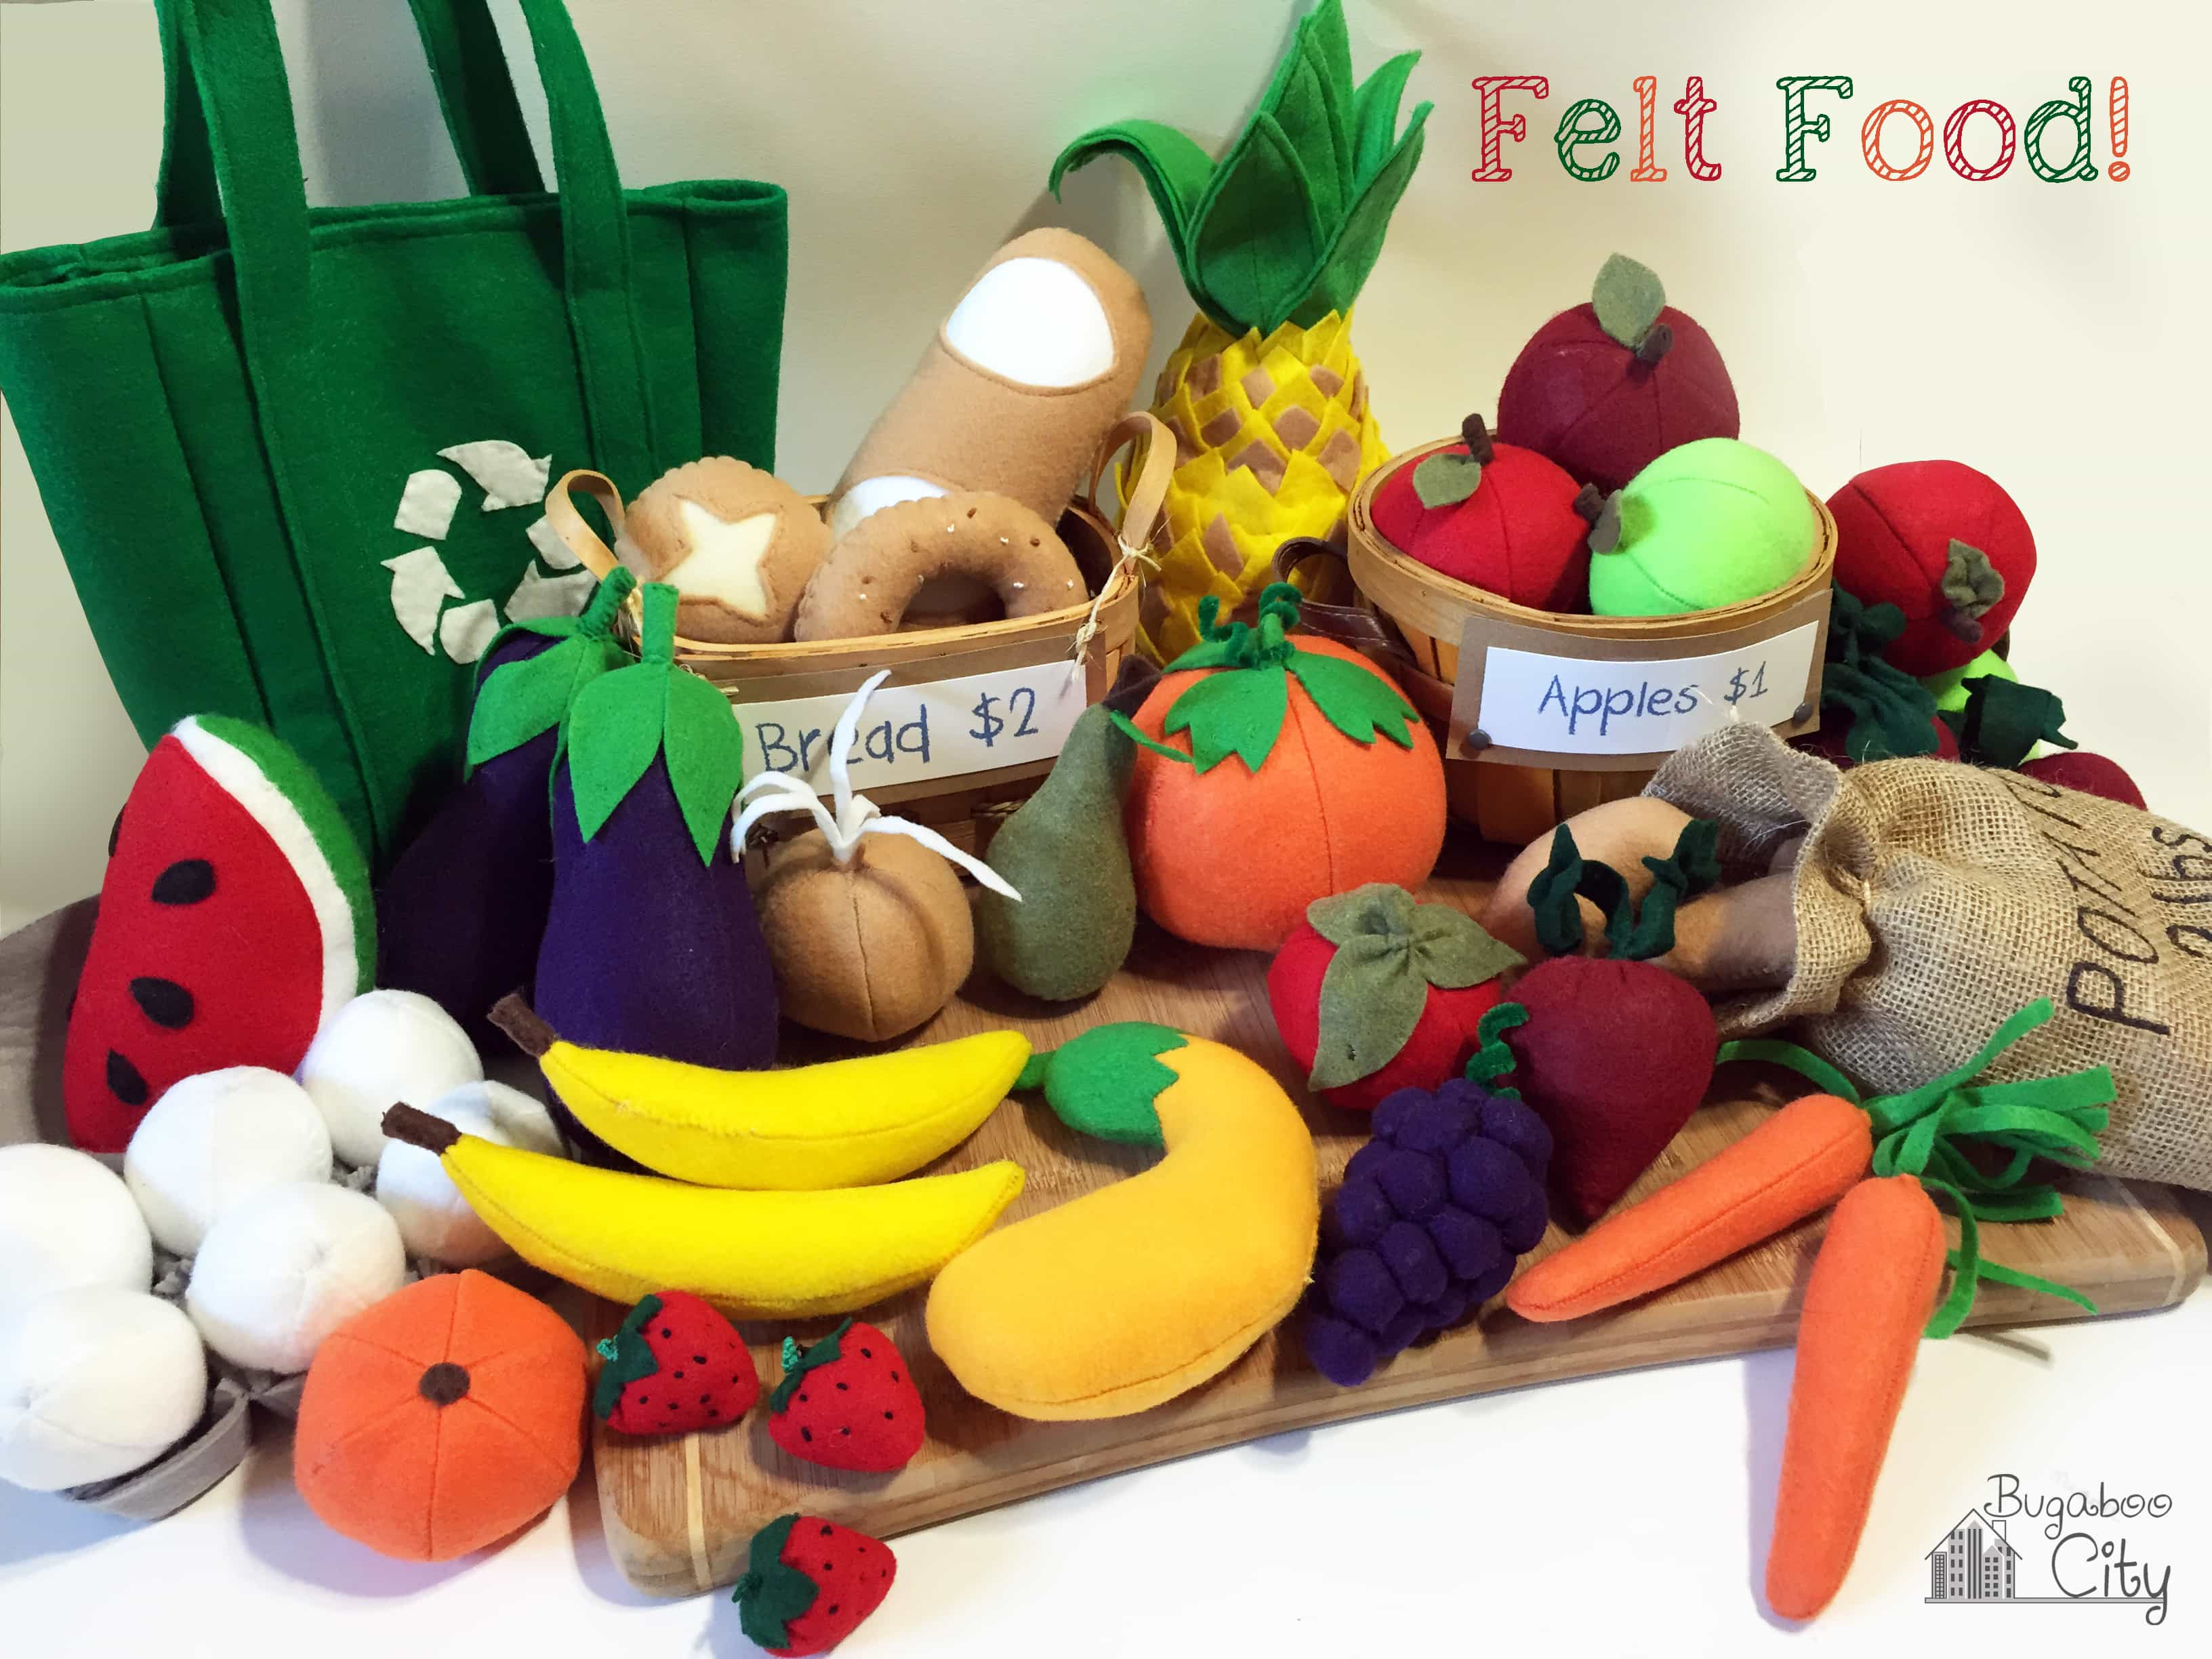 So Much Felt Food!!